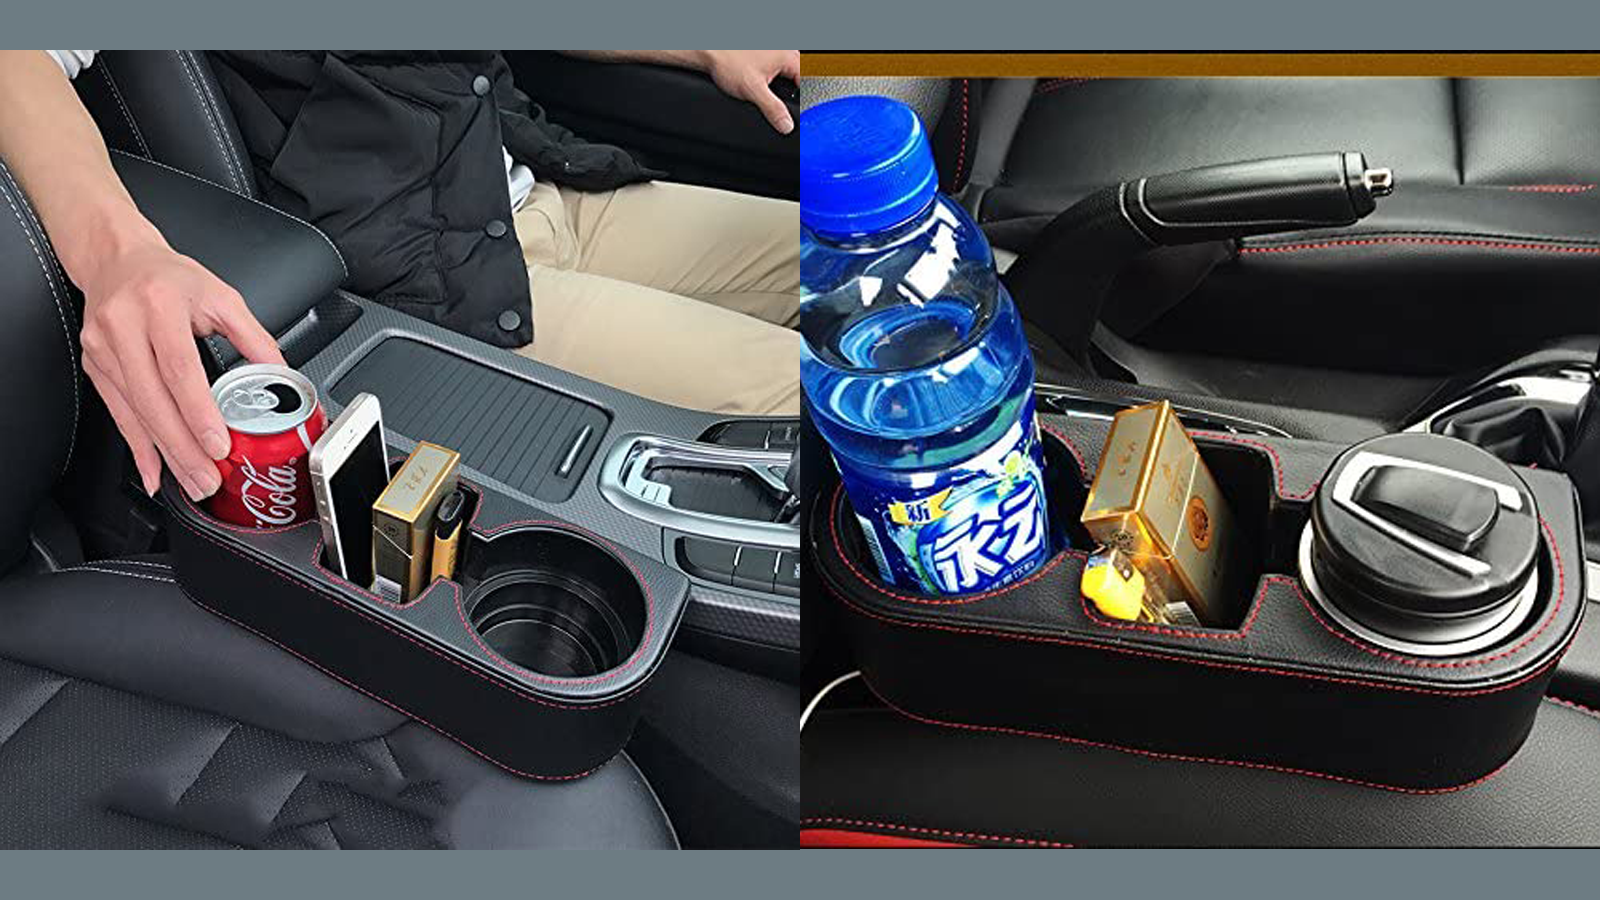 This Car Console Caddy Keeps the Junk in Your Car Organized